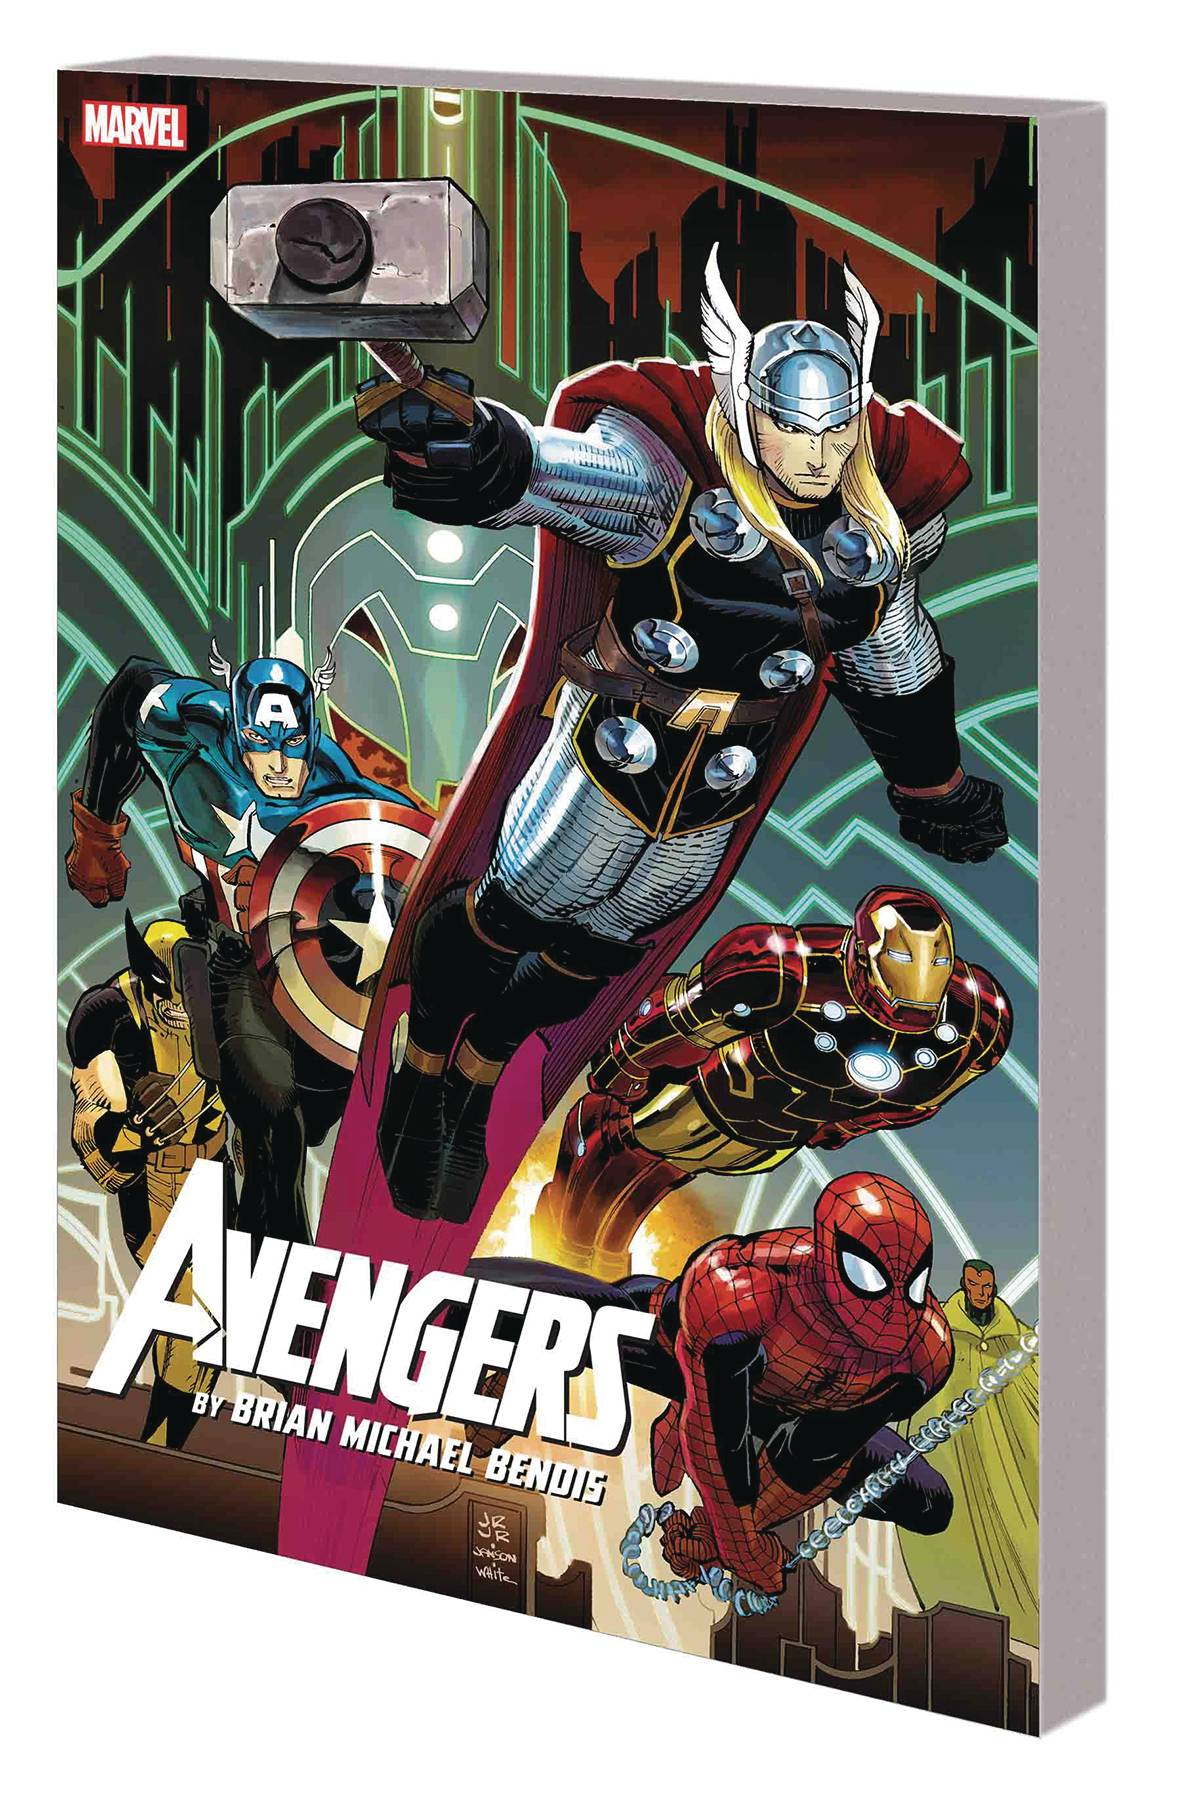 AVENGERS BY BRIAN MICHAEL BENDIS: THE COMPLETE COLLECTION VOL 01